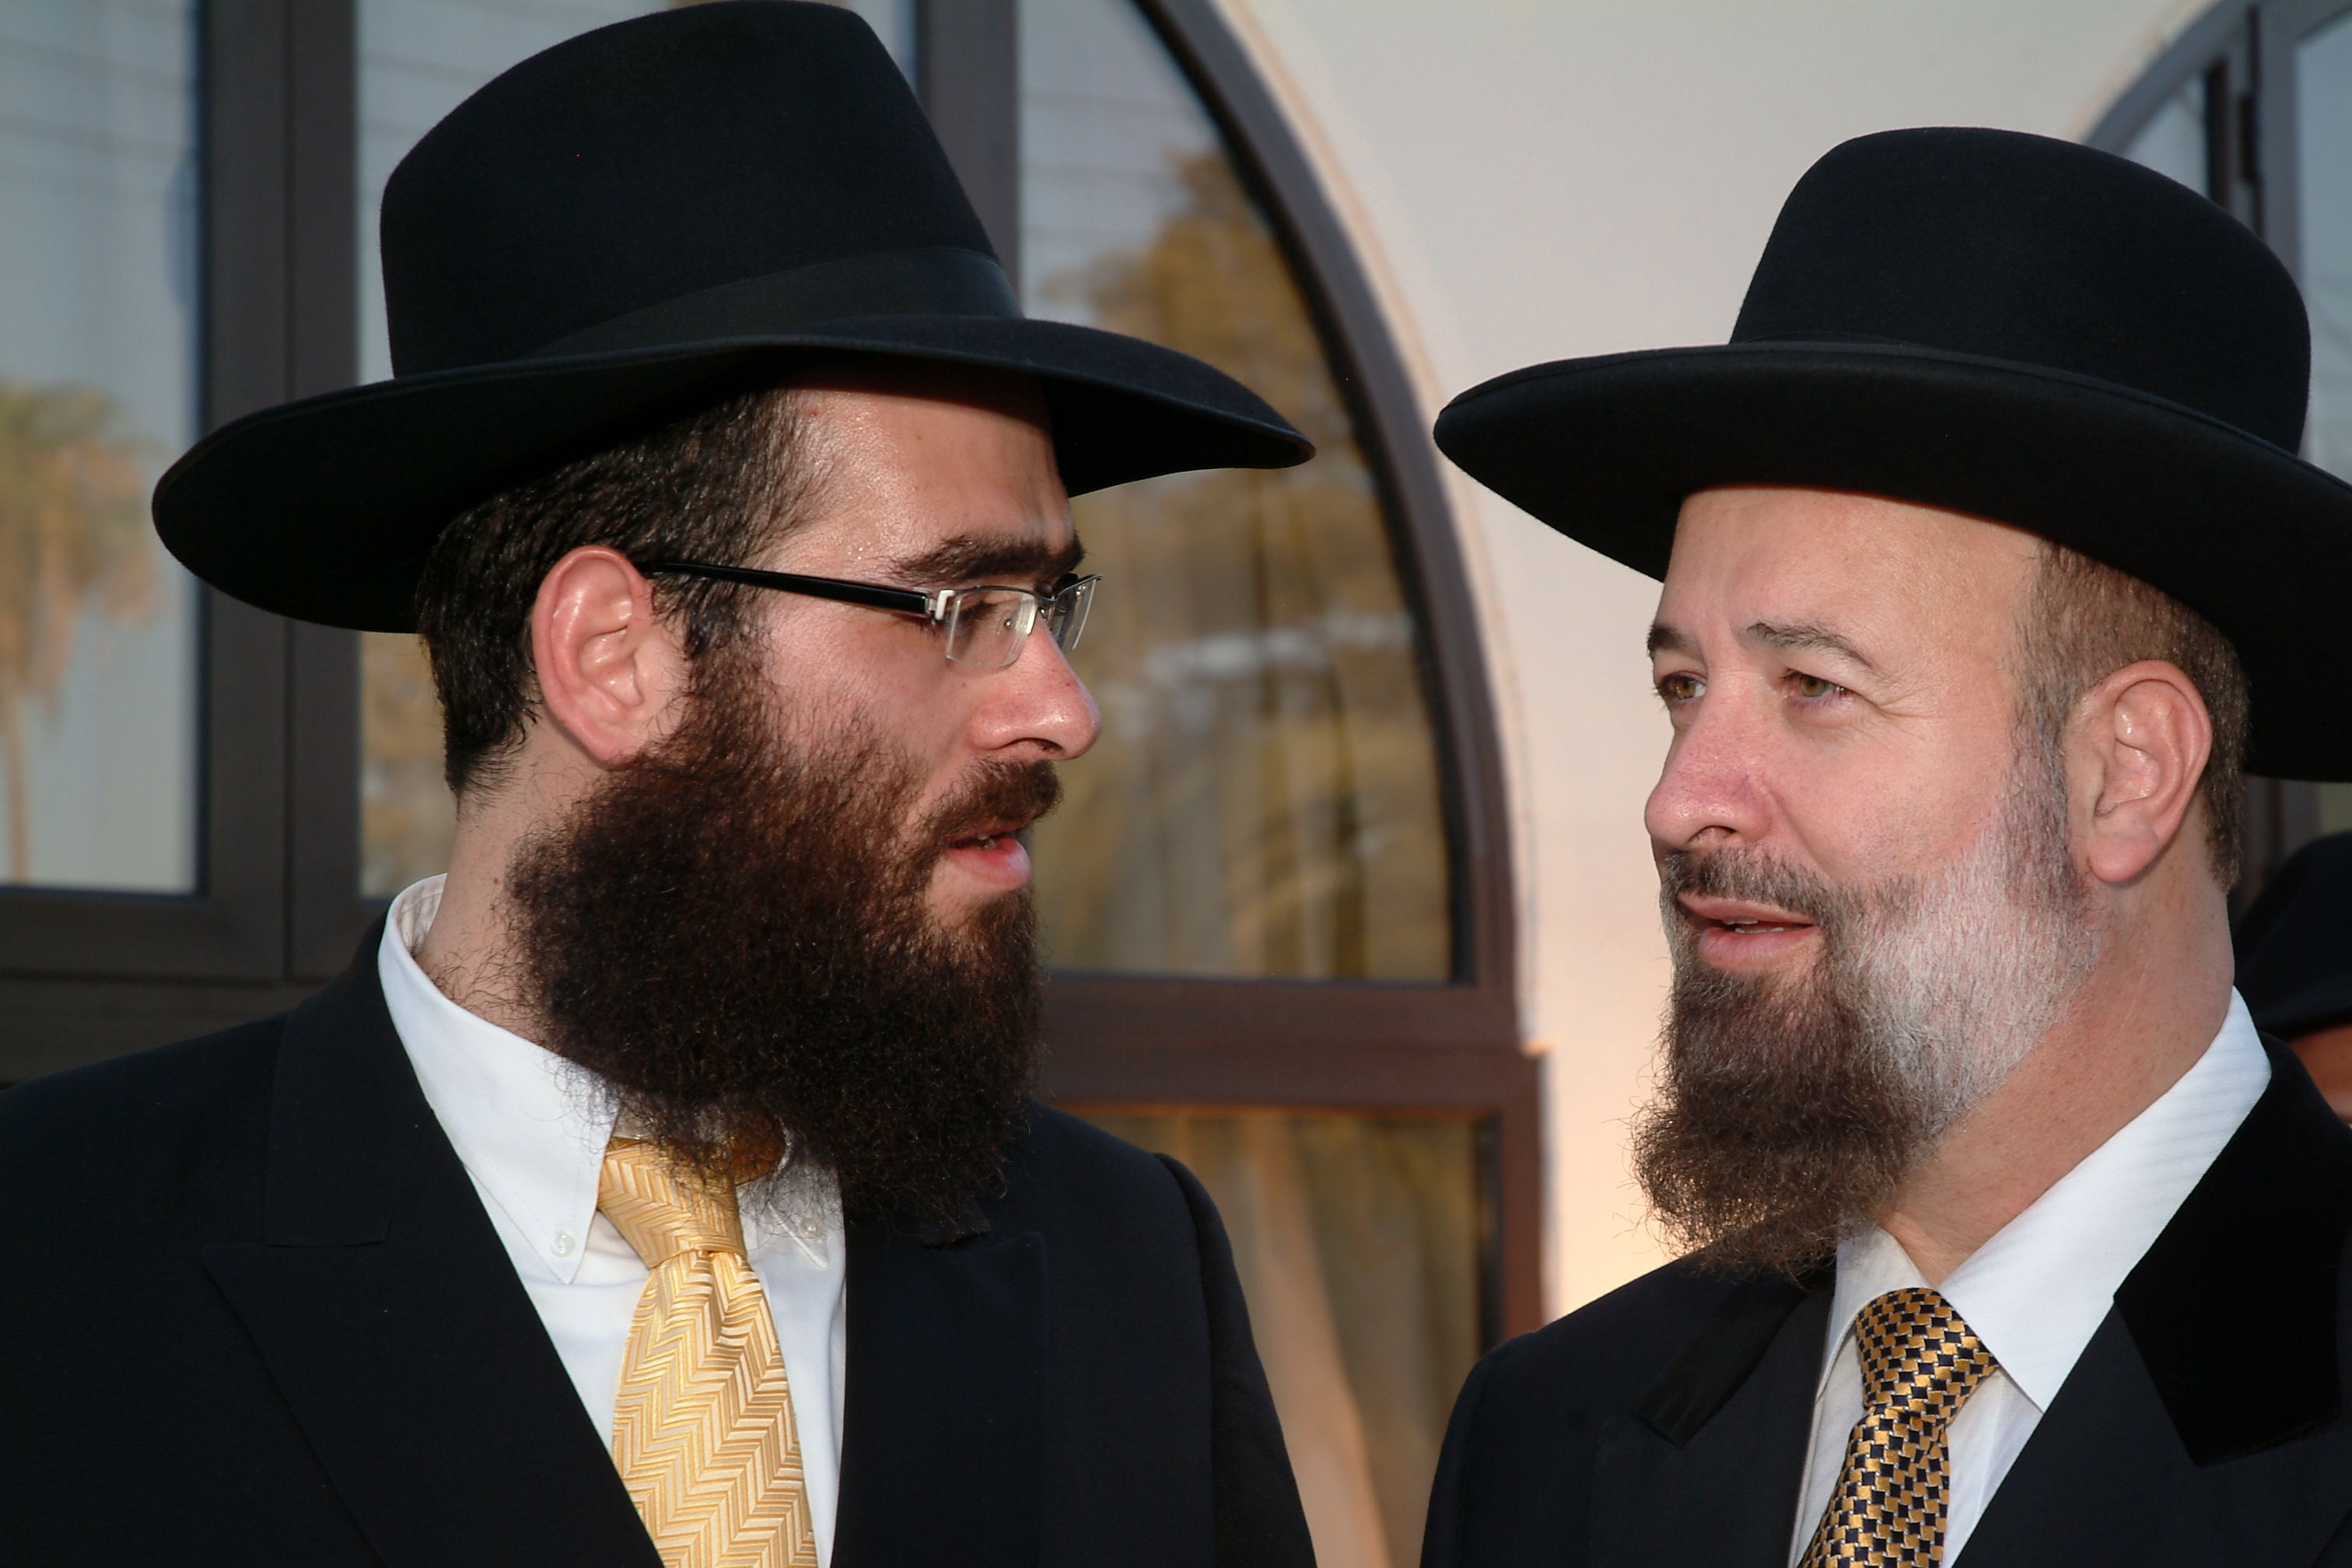 http://upload.wikimedia.org/wikipedia/commons/c/ca/Rabbi_Raskin_with_Rabbi_Metzger.jpg